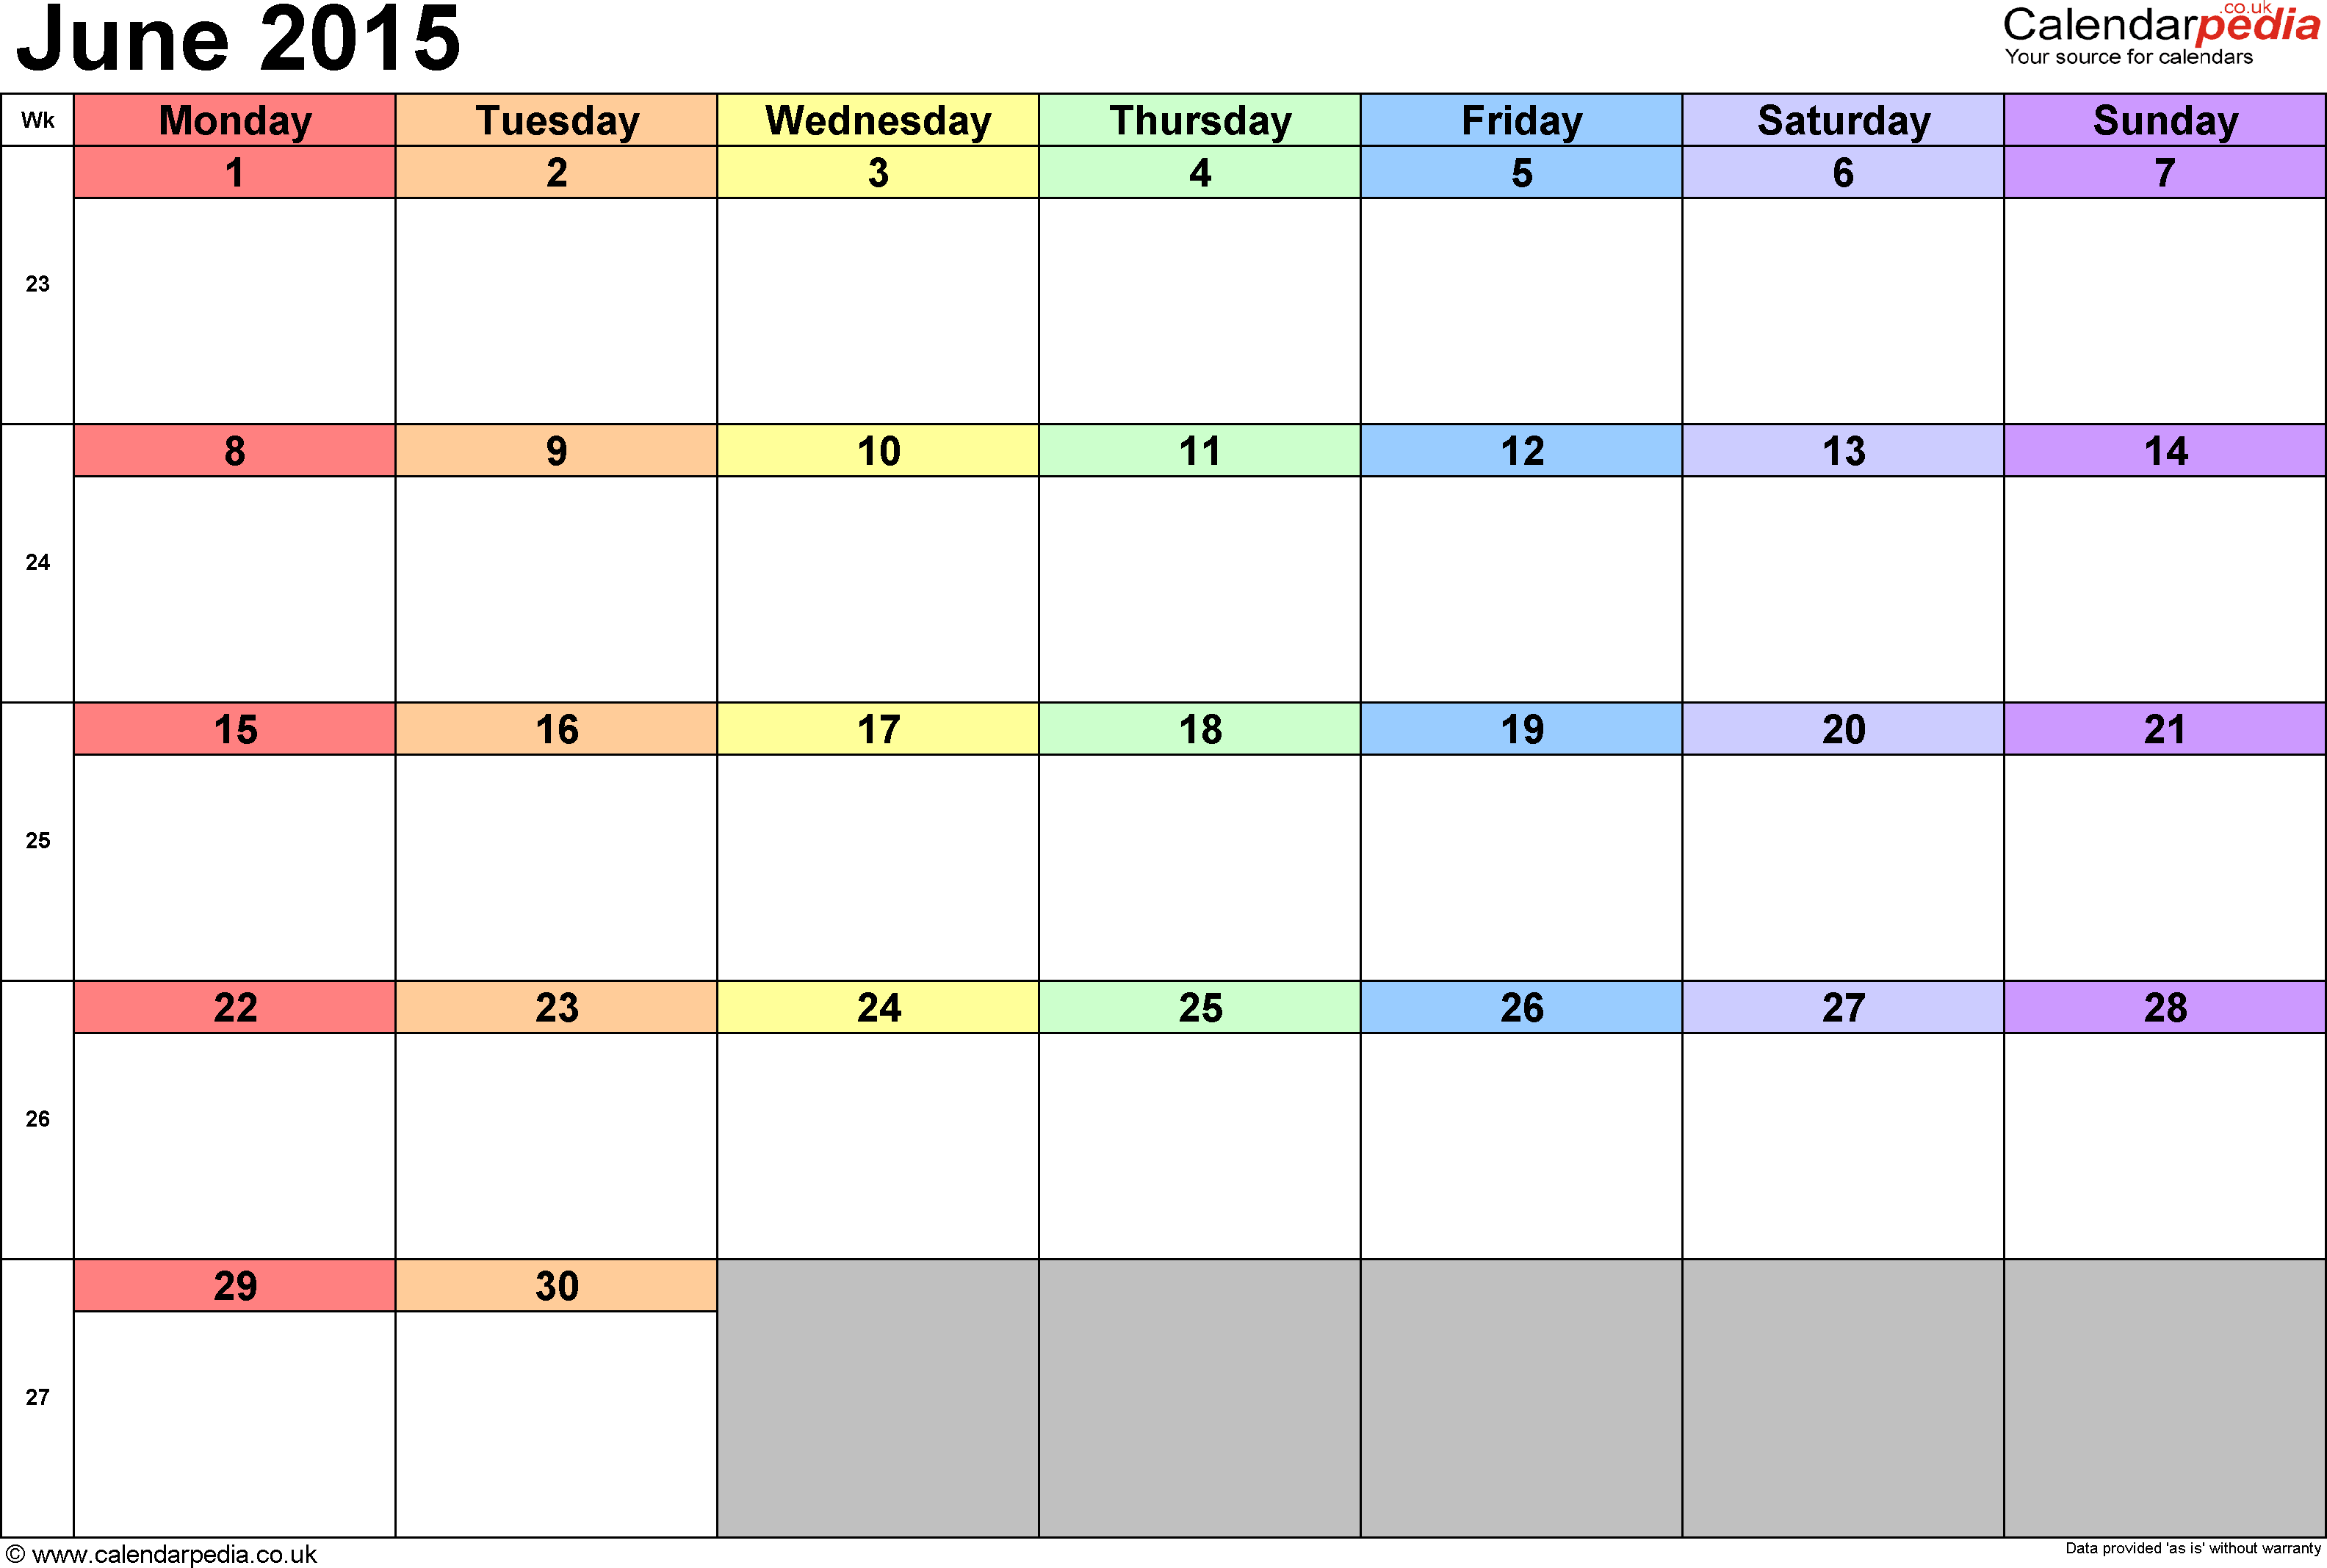 Calendar June 2015, landscape orientation, 1 page, with UK bank holidays and week numbers